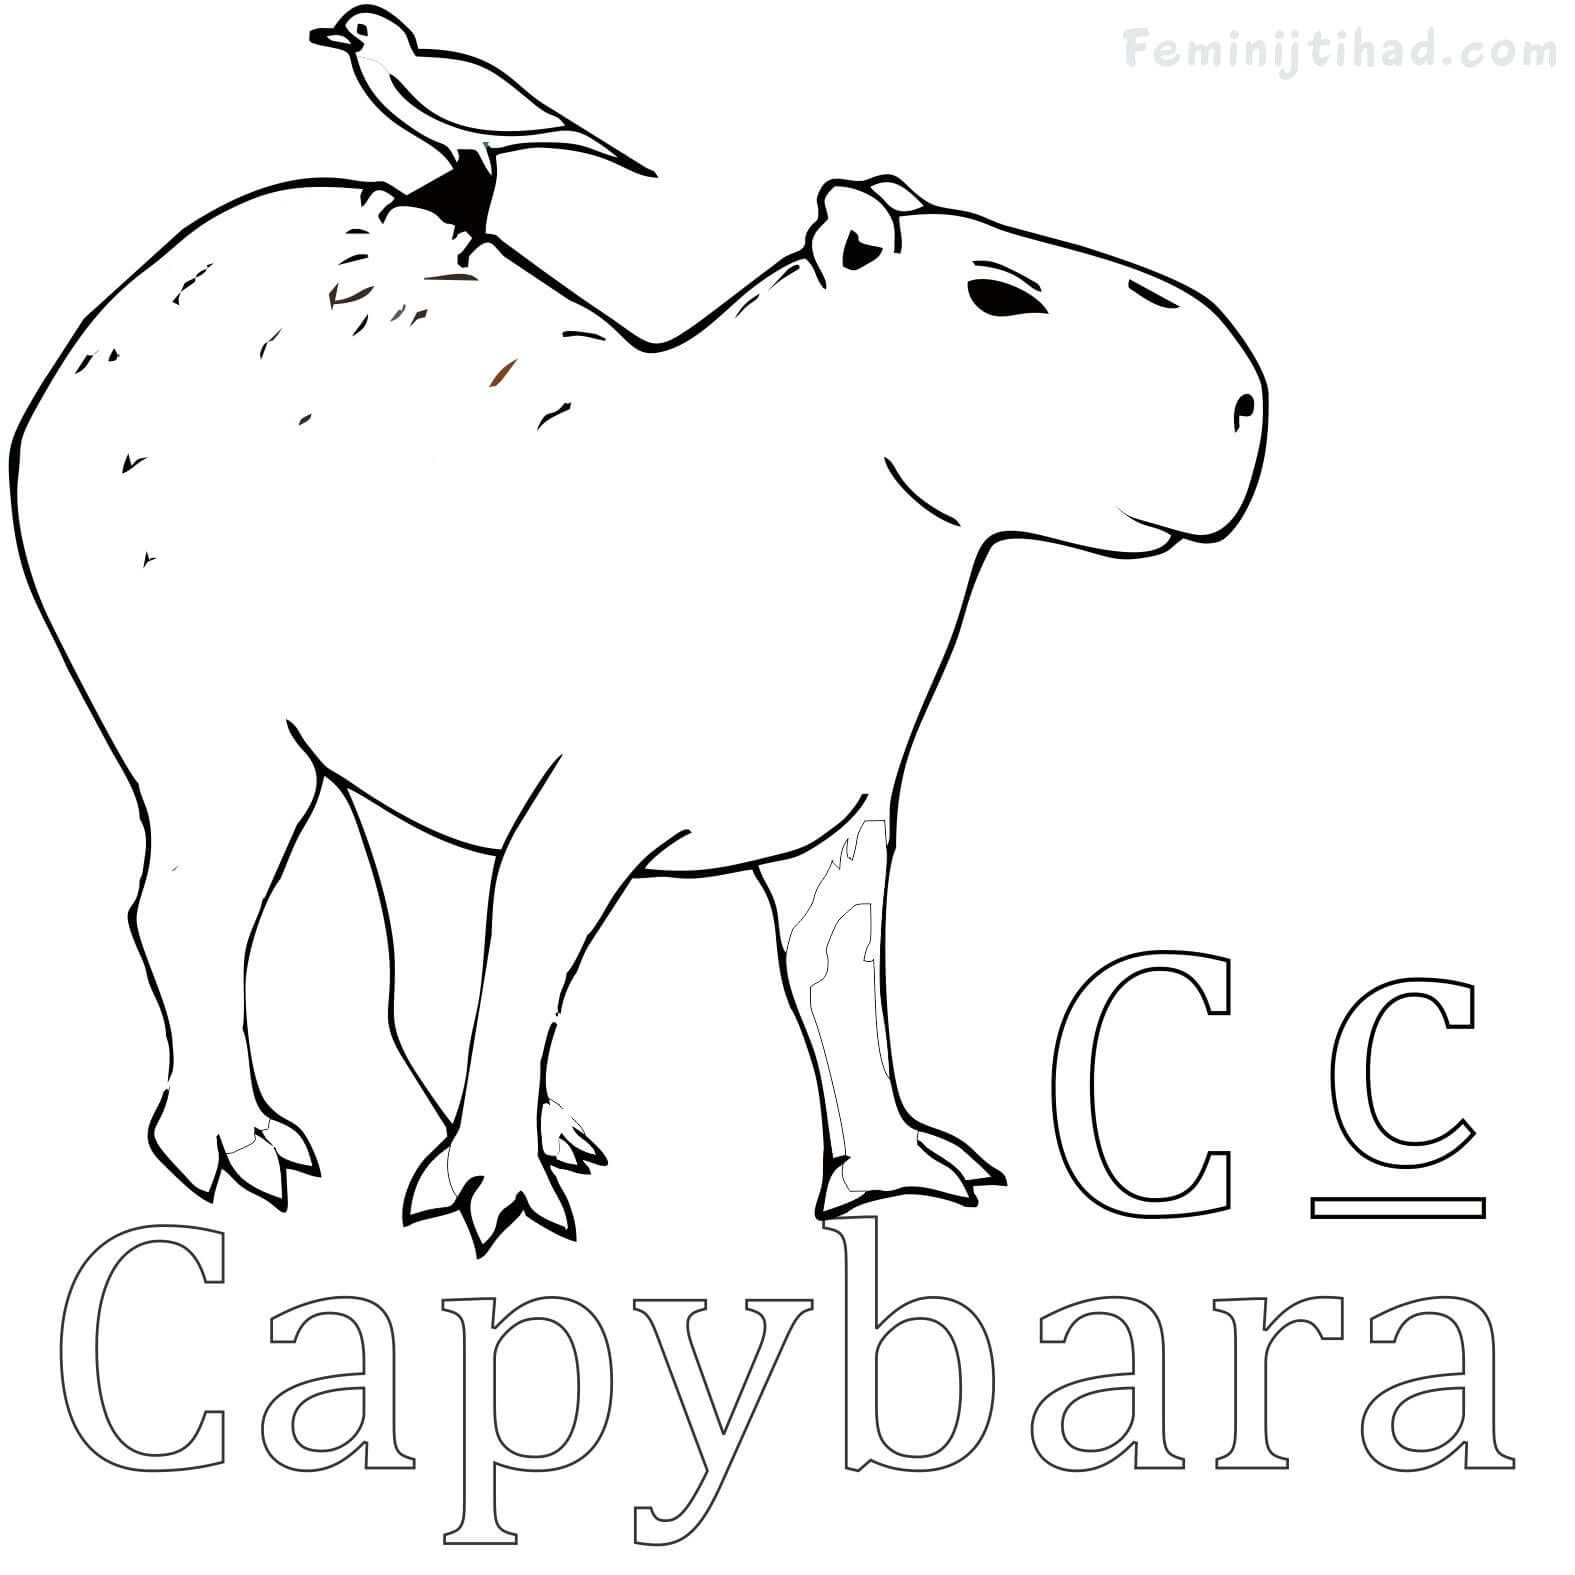 Easy Capybara Coloring Pages Free Coloring Sheets Animal Coloring Pages Coloring Pages Capybara